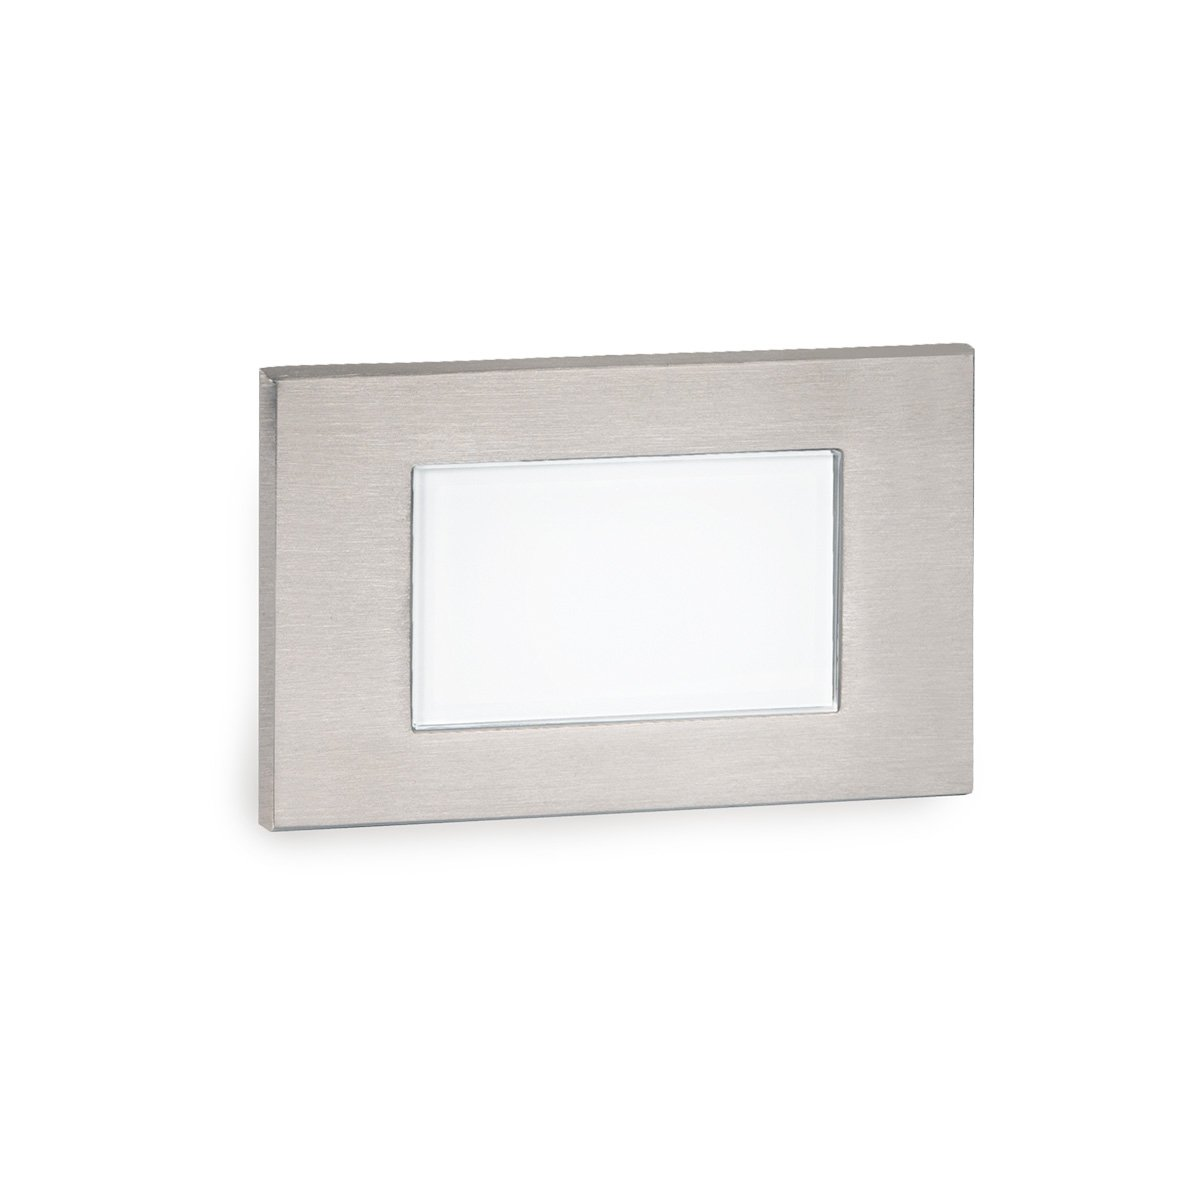 WAC Lighting 4071-AMSS Wac Landscape LED Low Voltage Diffused Step and Wall Light Amber, Stainless Steel